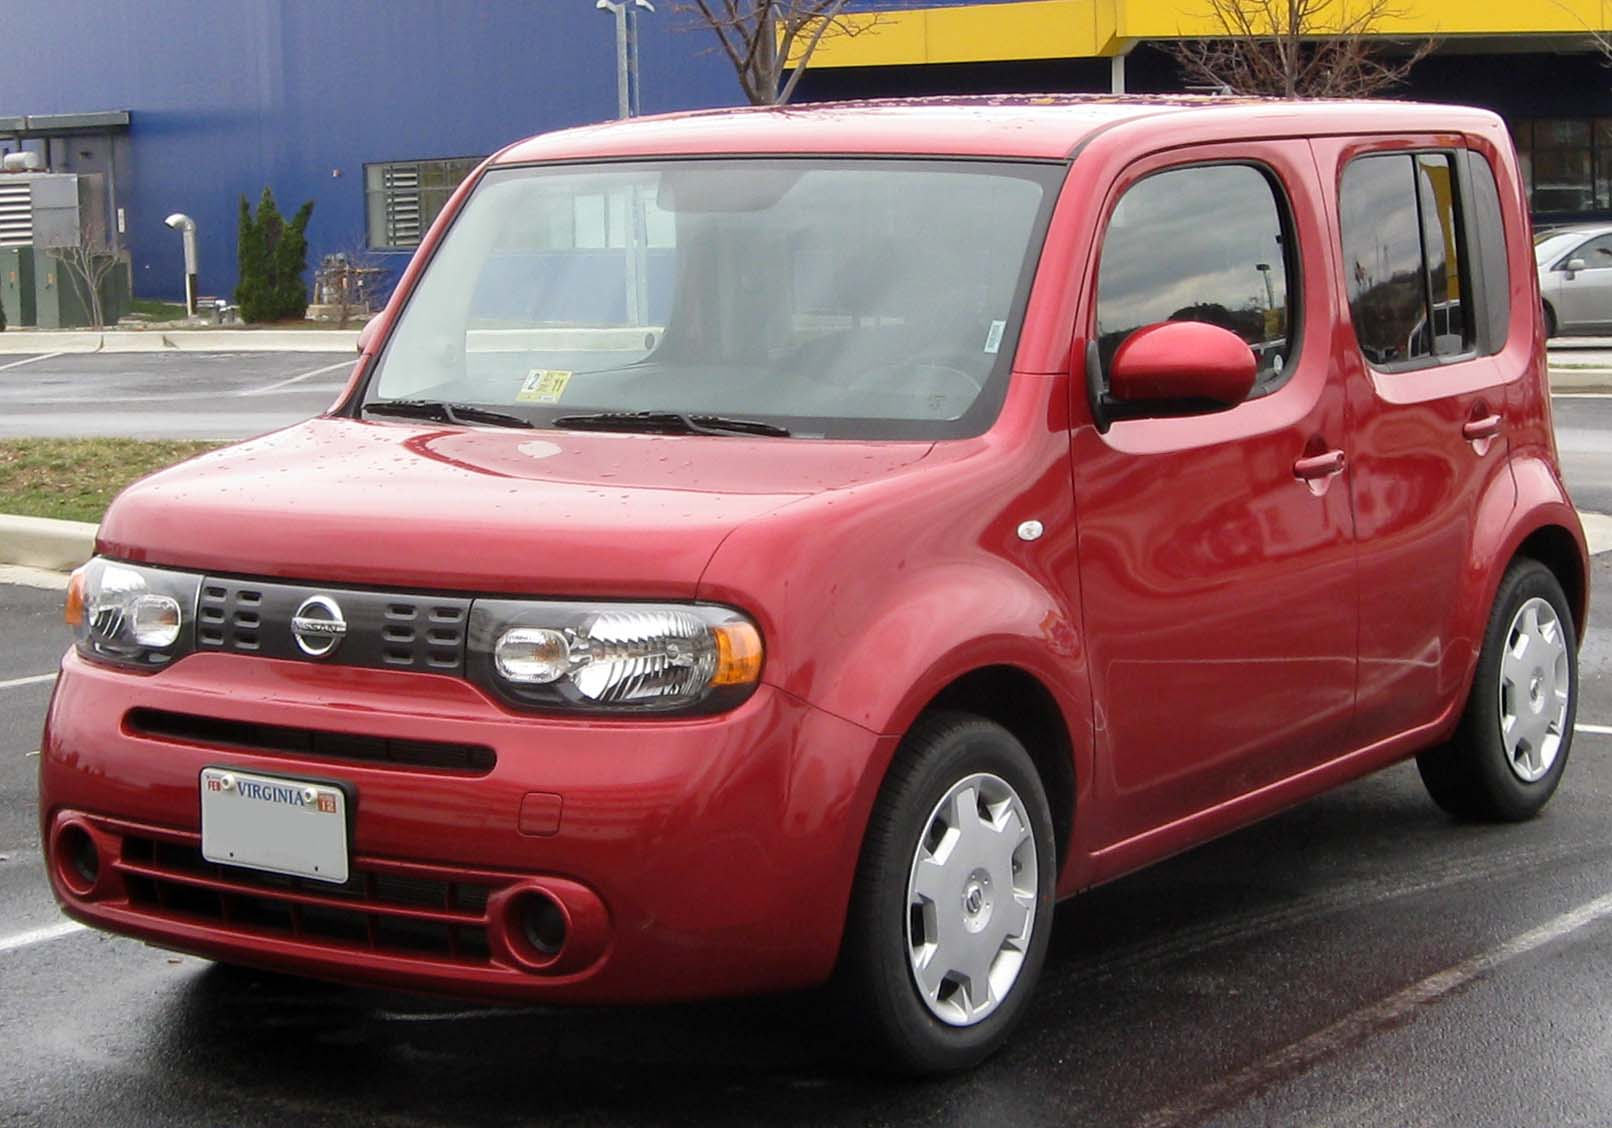 2010 nissan cube information and photos momentcar nissan cube 2010 5 nissan cube 2010 5 vanachro Image collections